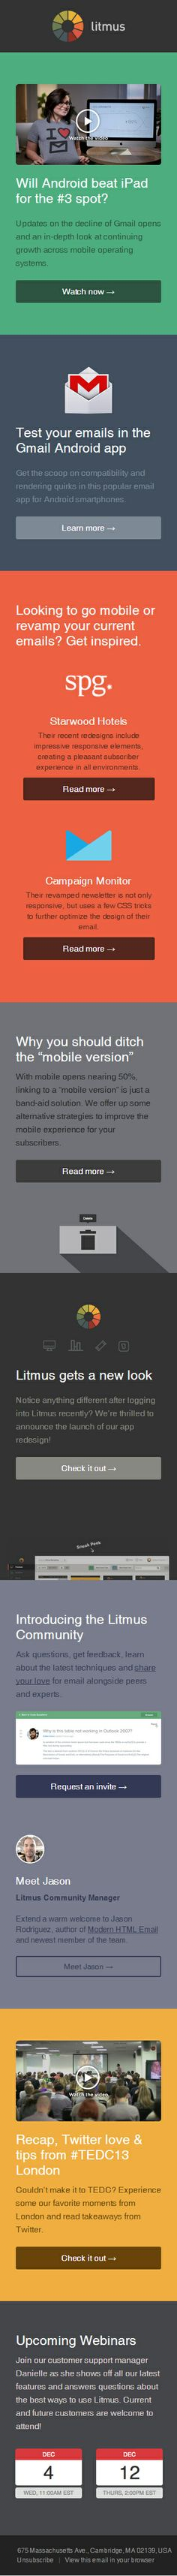 """Responsive email design from Litmus. PRDXN: The best one I've (@libswan) have seen. Great use of """"colour blocks""""..."""